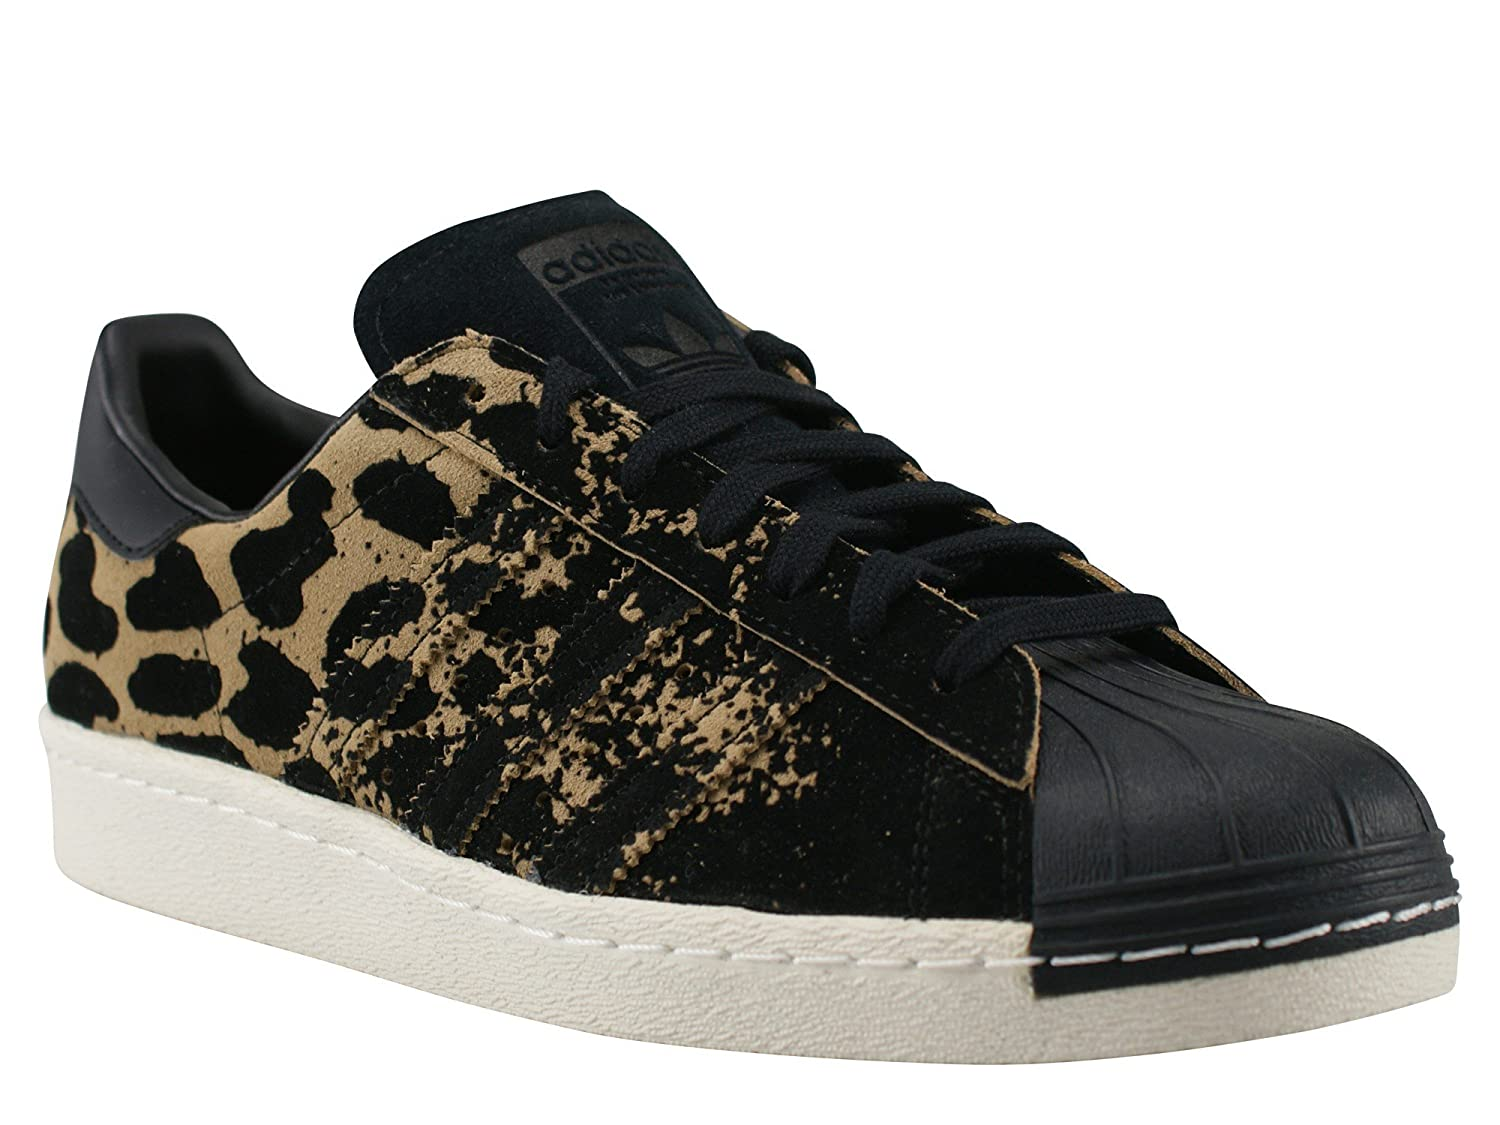 Koop Adidas Superstar 80S W S81328, Womens, Black, sneakers